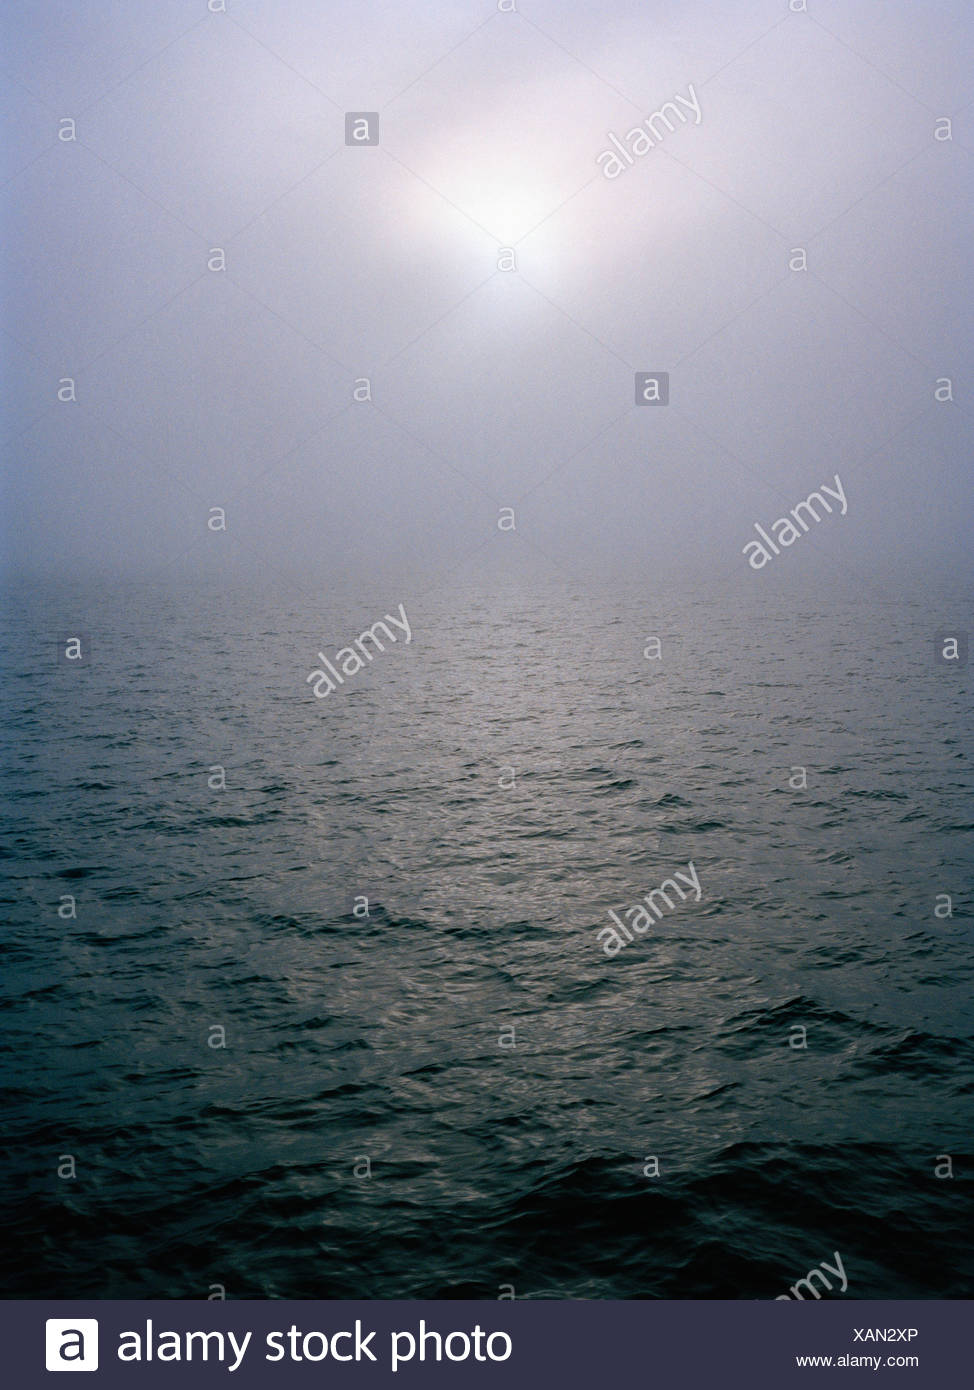 The ocean, Vastkusten, Sweden. - Stock Image